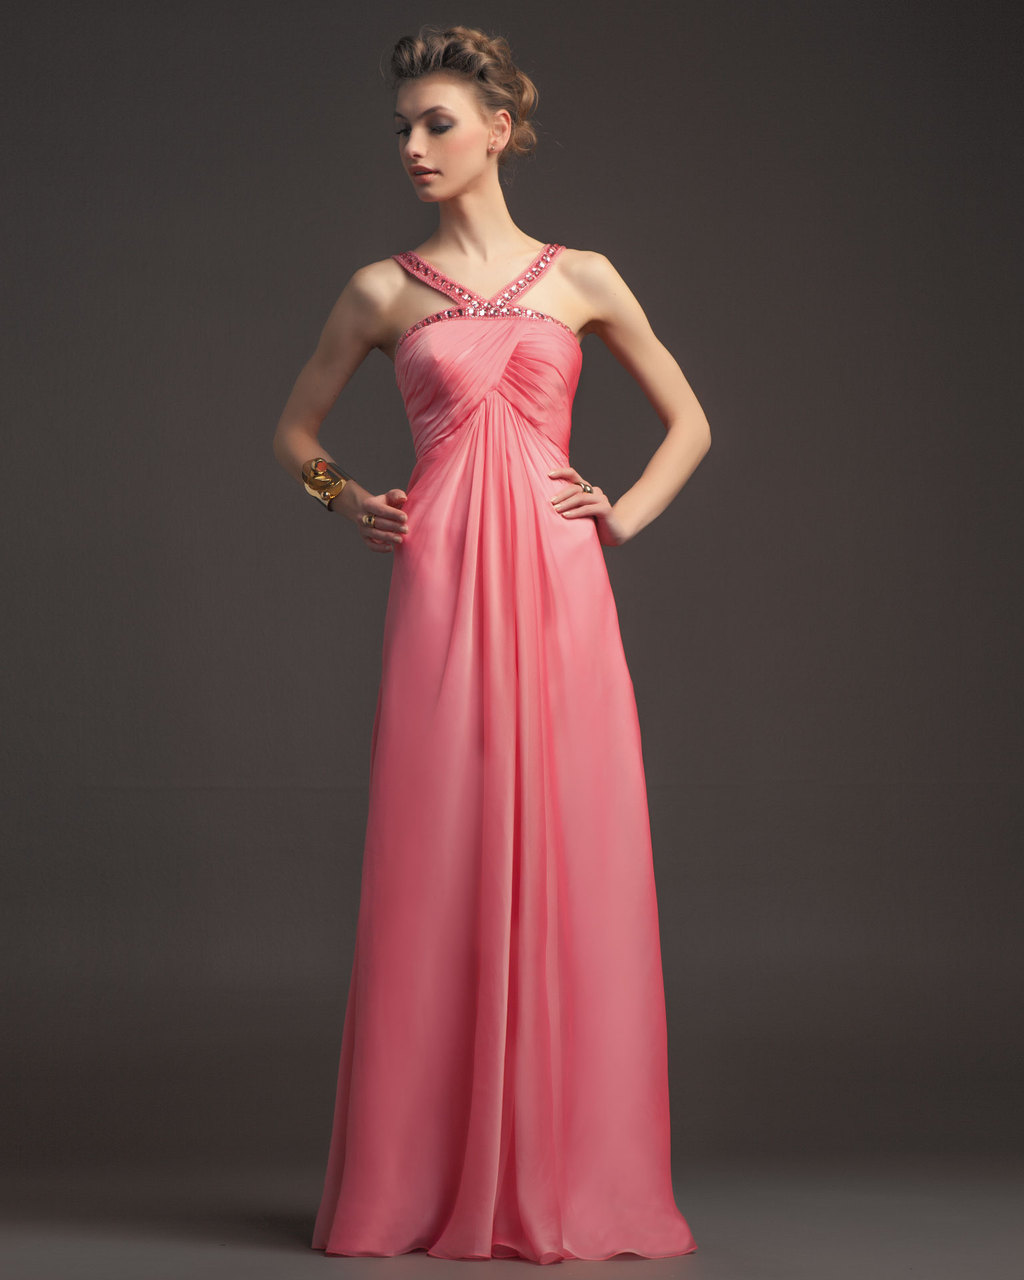 Gorgeous-2014-bridesmaid-dresses-from-aire-barcelona-vintage-peachy-pink-with-beaded-neckline.full